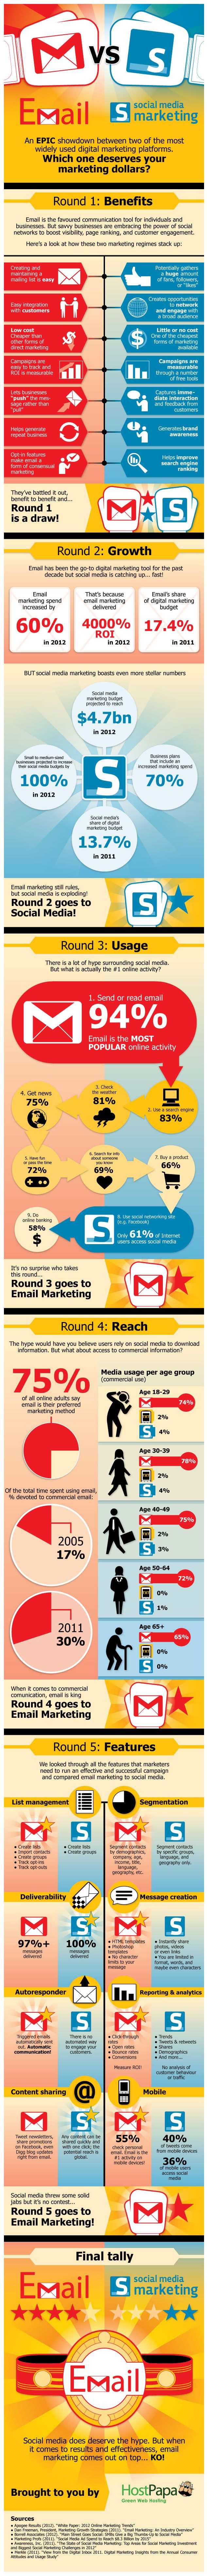 Digital-Marketing-Email-Marketing-Knocks-Out-Social-Media-in-5-Rounds-infographic-EmailMarketing Digital Marketing : Email Marketing Knocks Out Social Media in 5 Rounds #infographic #EmailMarketing...